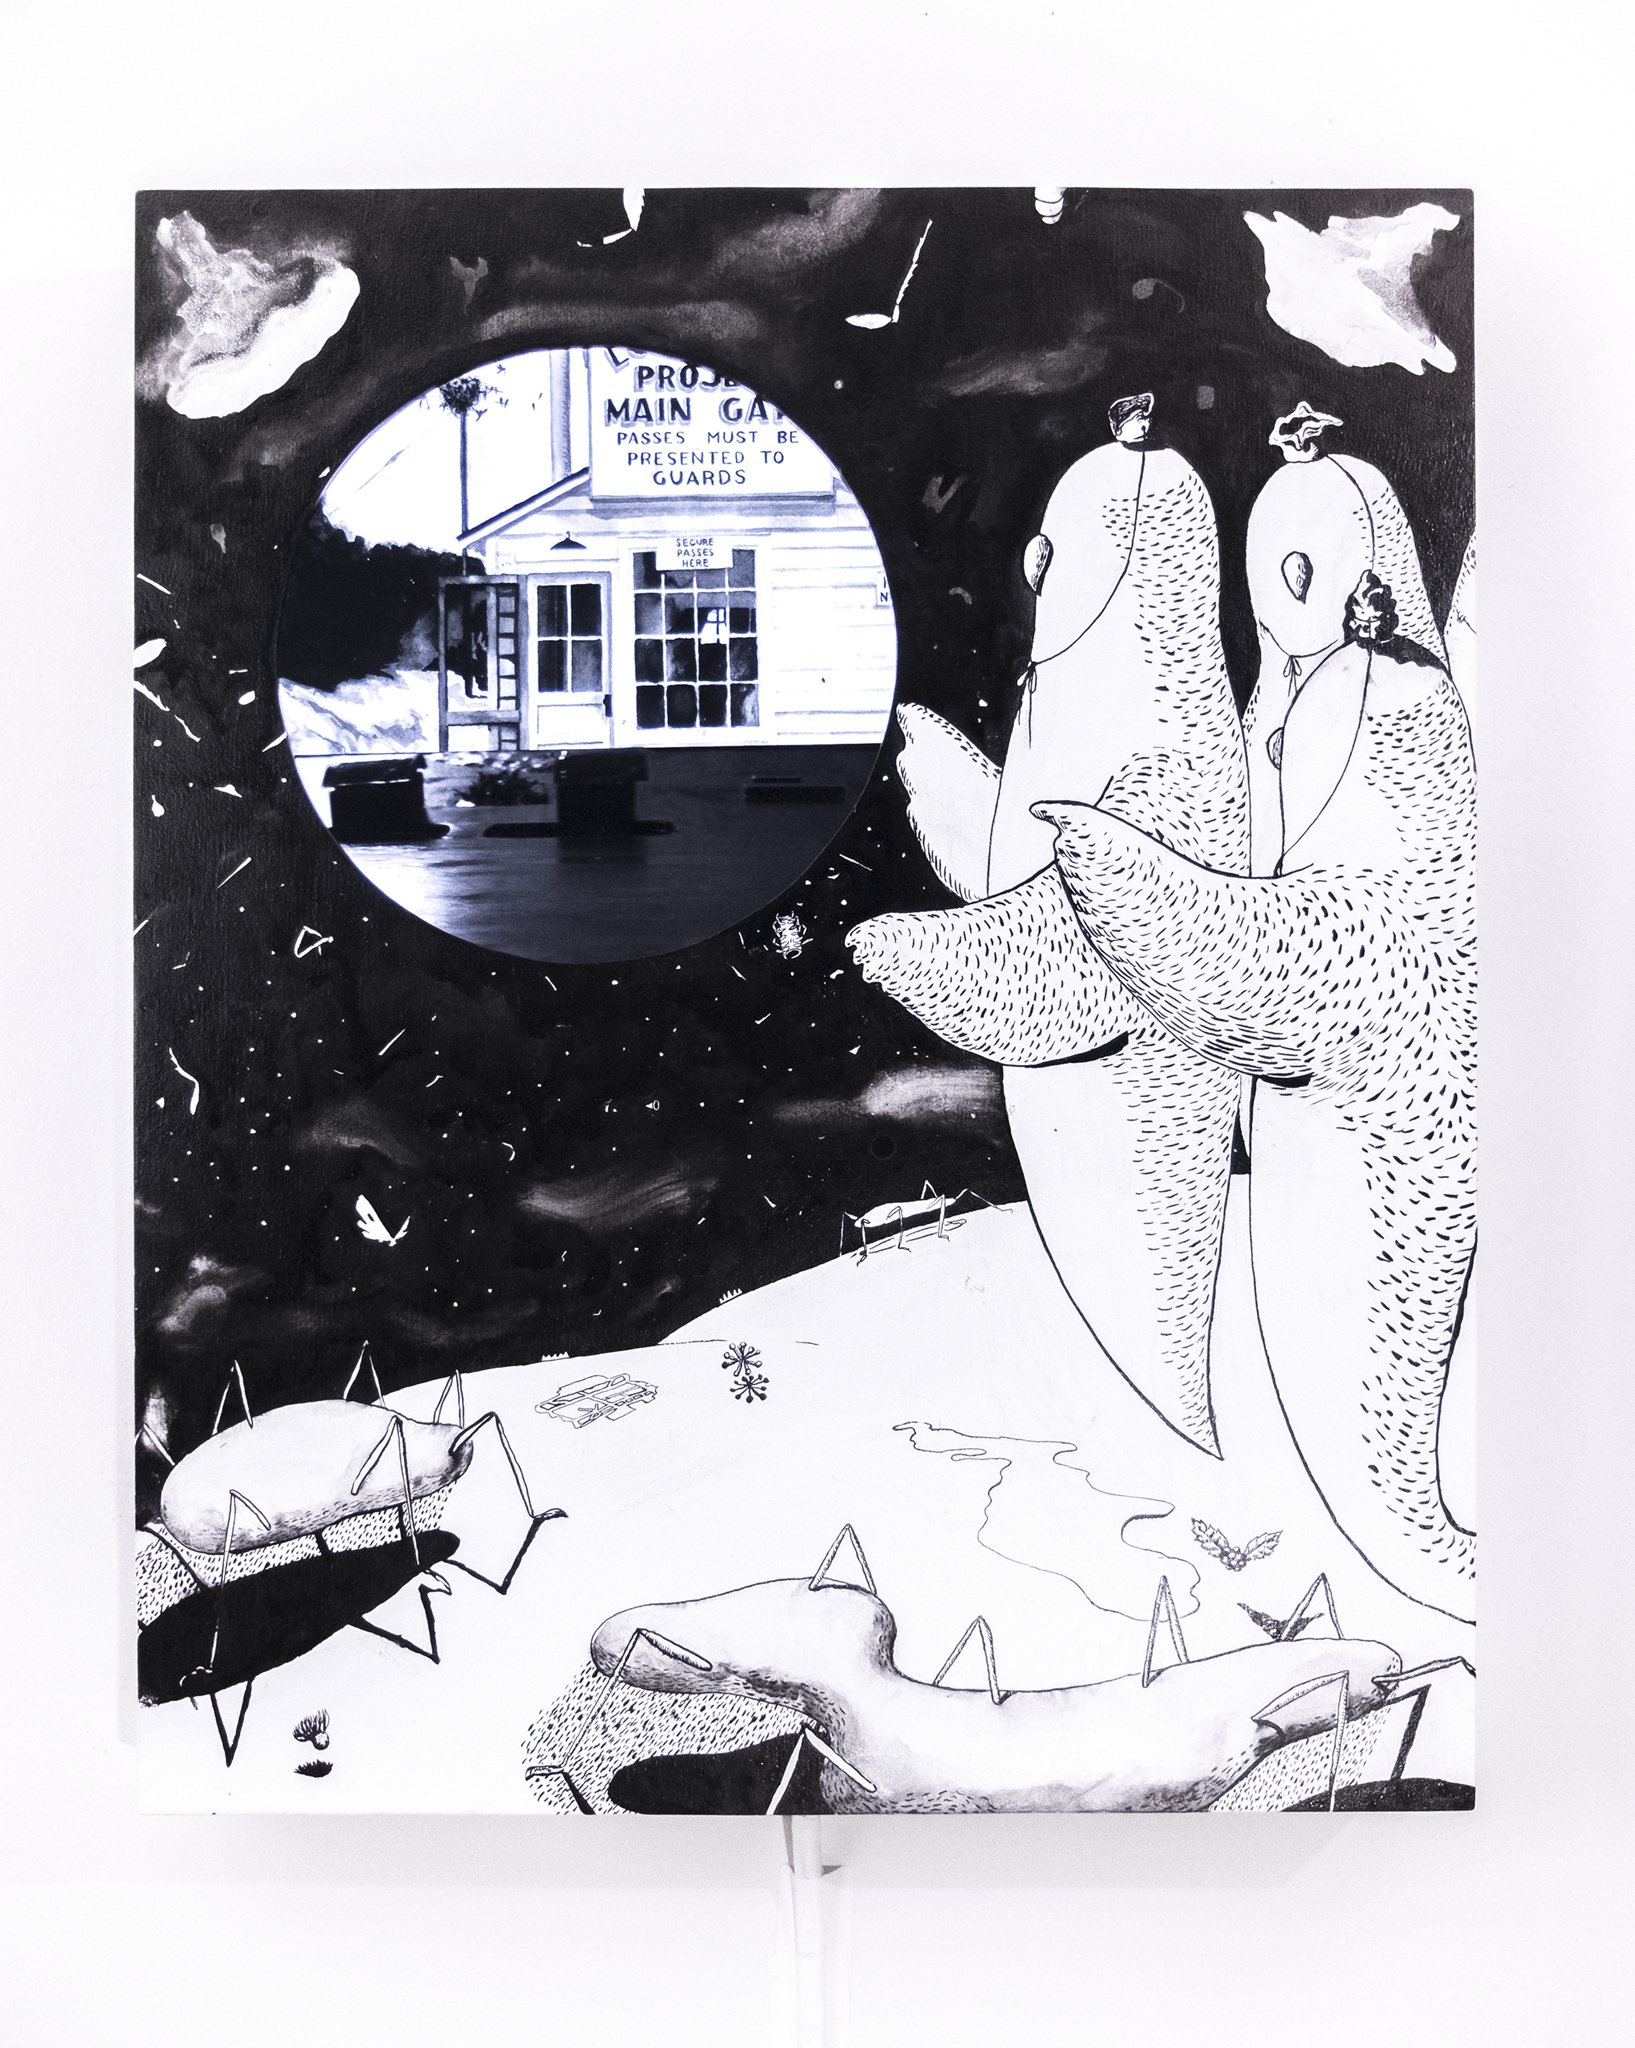 Gaku Tsutaja,  Study with the Moon,  2019. Sumi ink, house paint, panel, media player, monitor, and speaker, 29 x 24 x 2 1/2 inches / 73.7 x 61.0 x 6.4 cm.